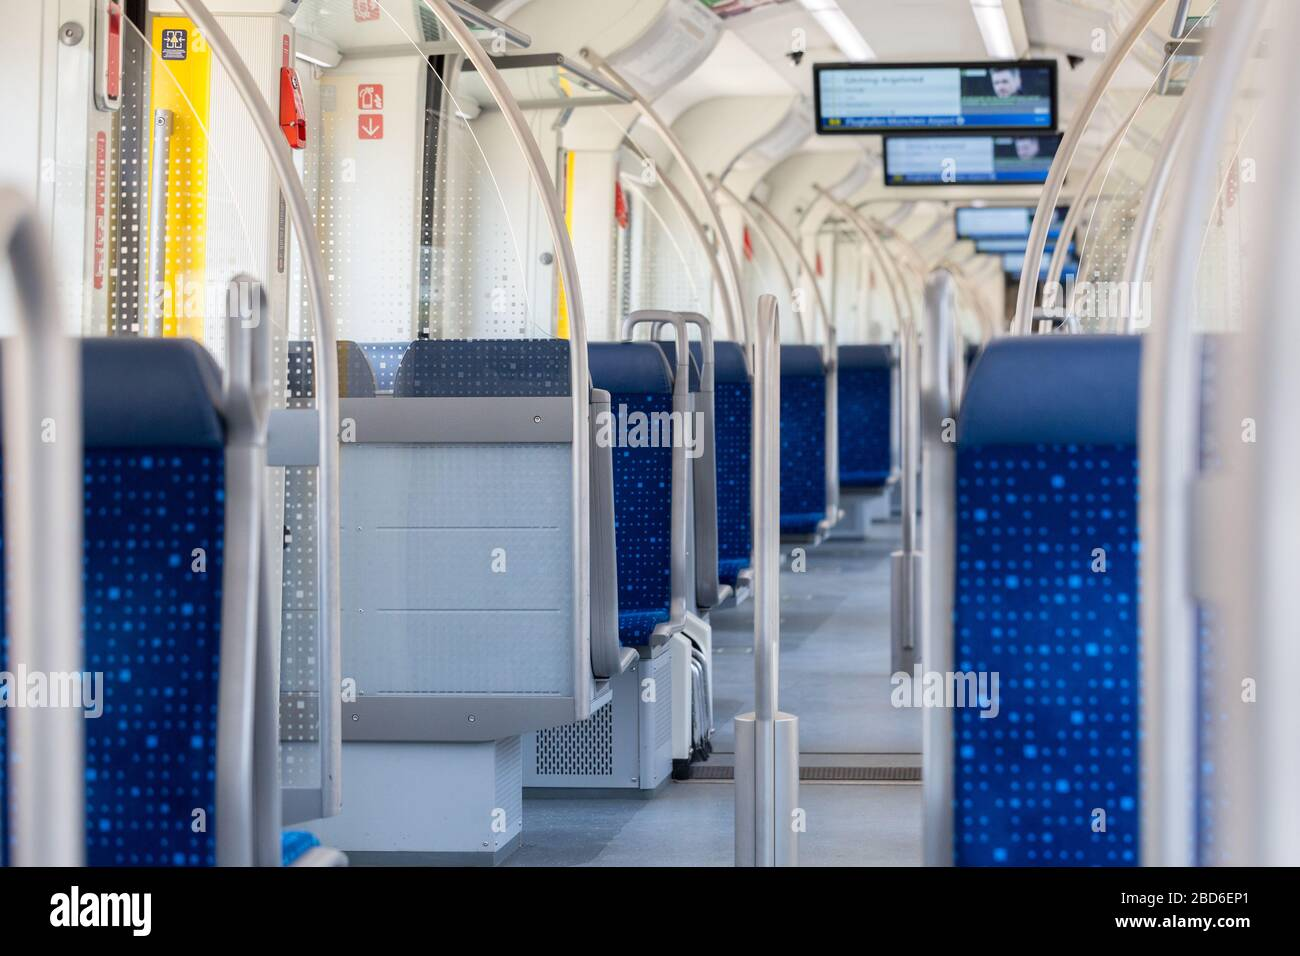 Interior of an empty Munich public transport train (S-Bahn / S Bahn). Due to Covid-19 the usage of public transport in Germany dropped by 80 to 90%. Stock Photo